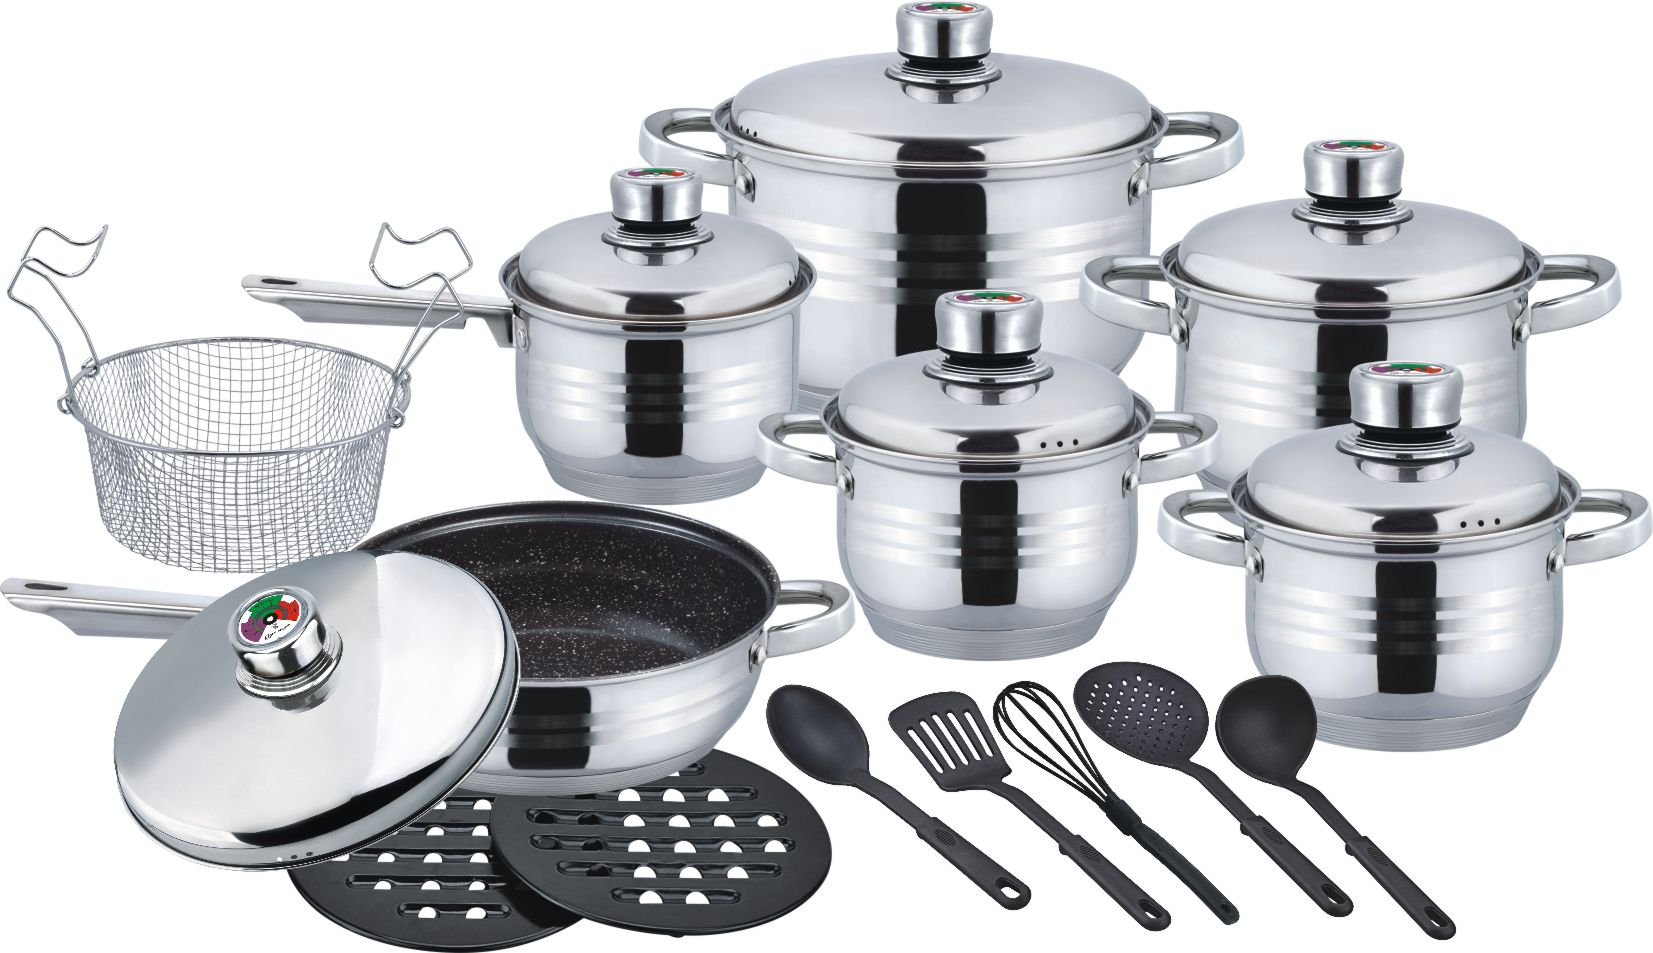 Durable 20pcs belly shape cookware set